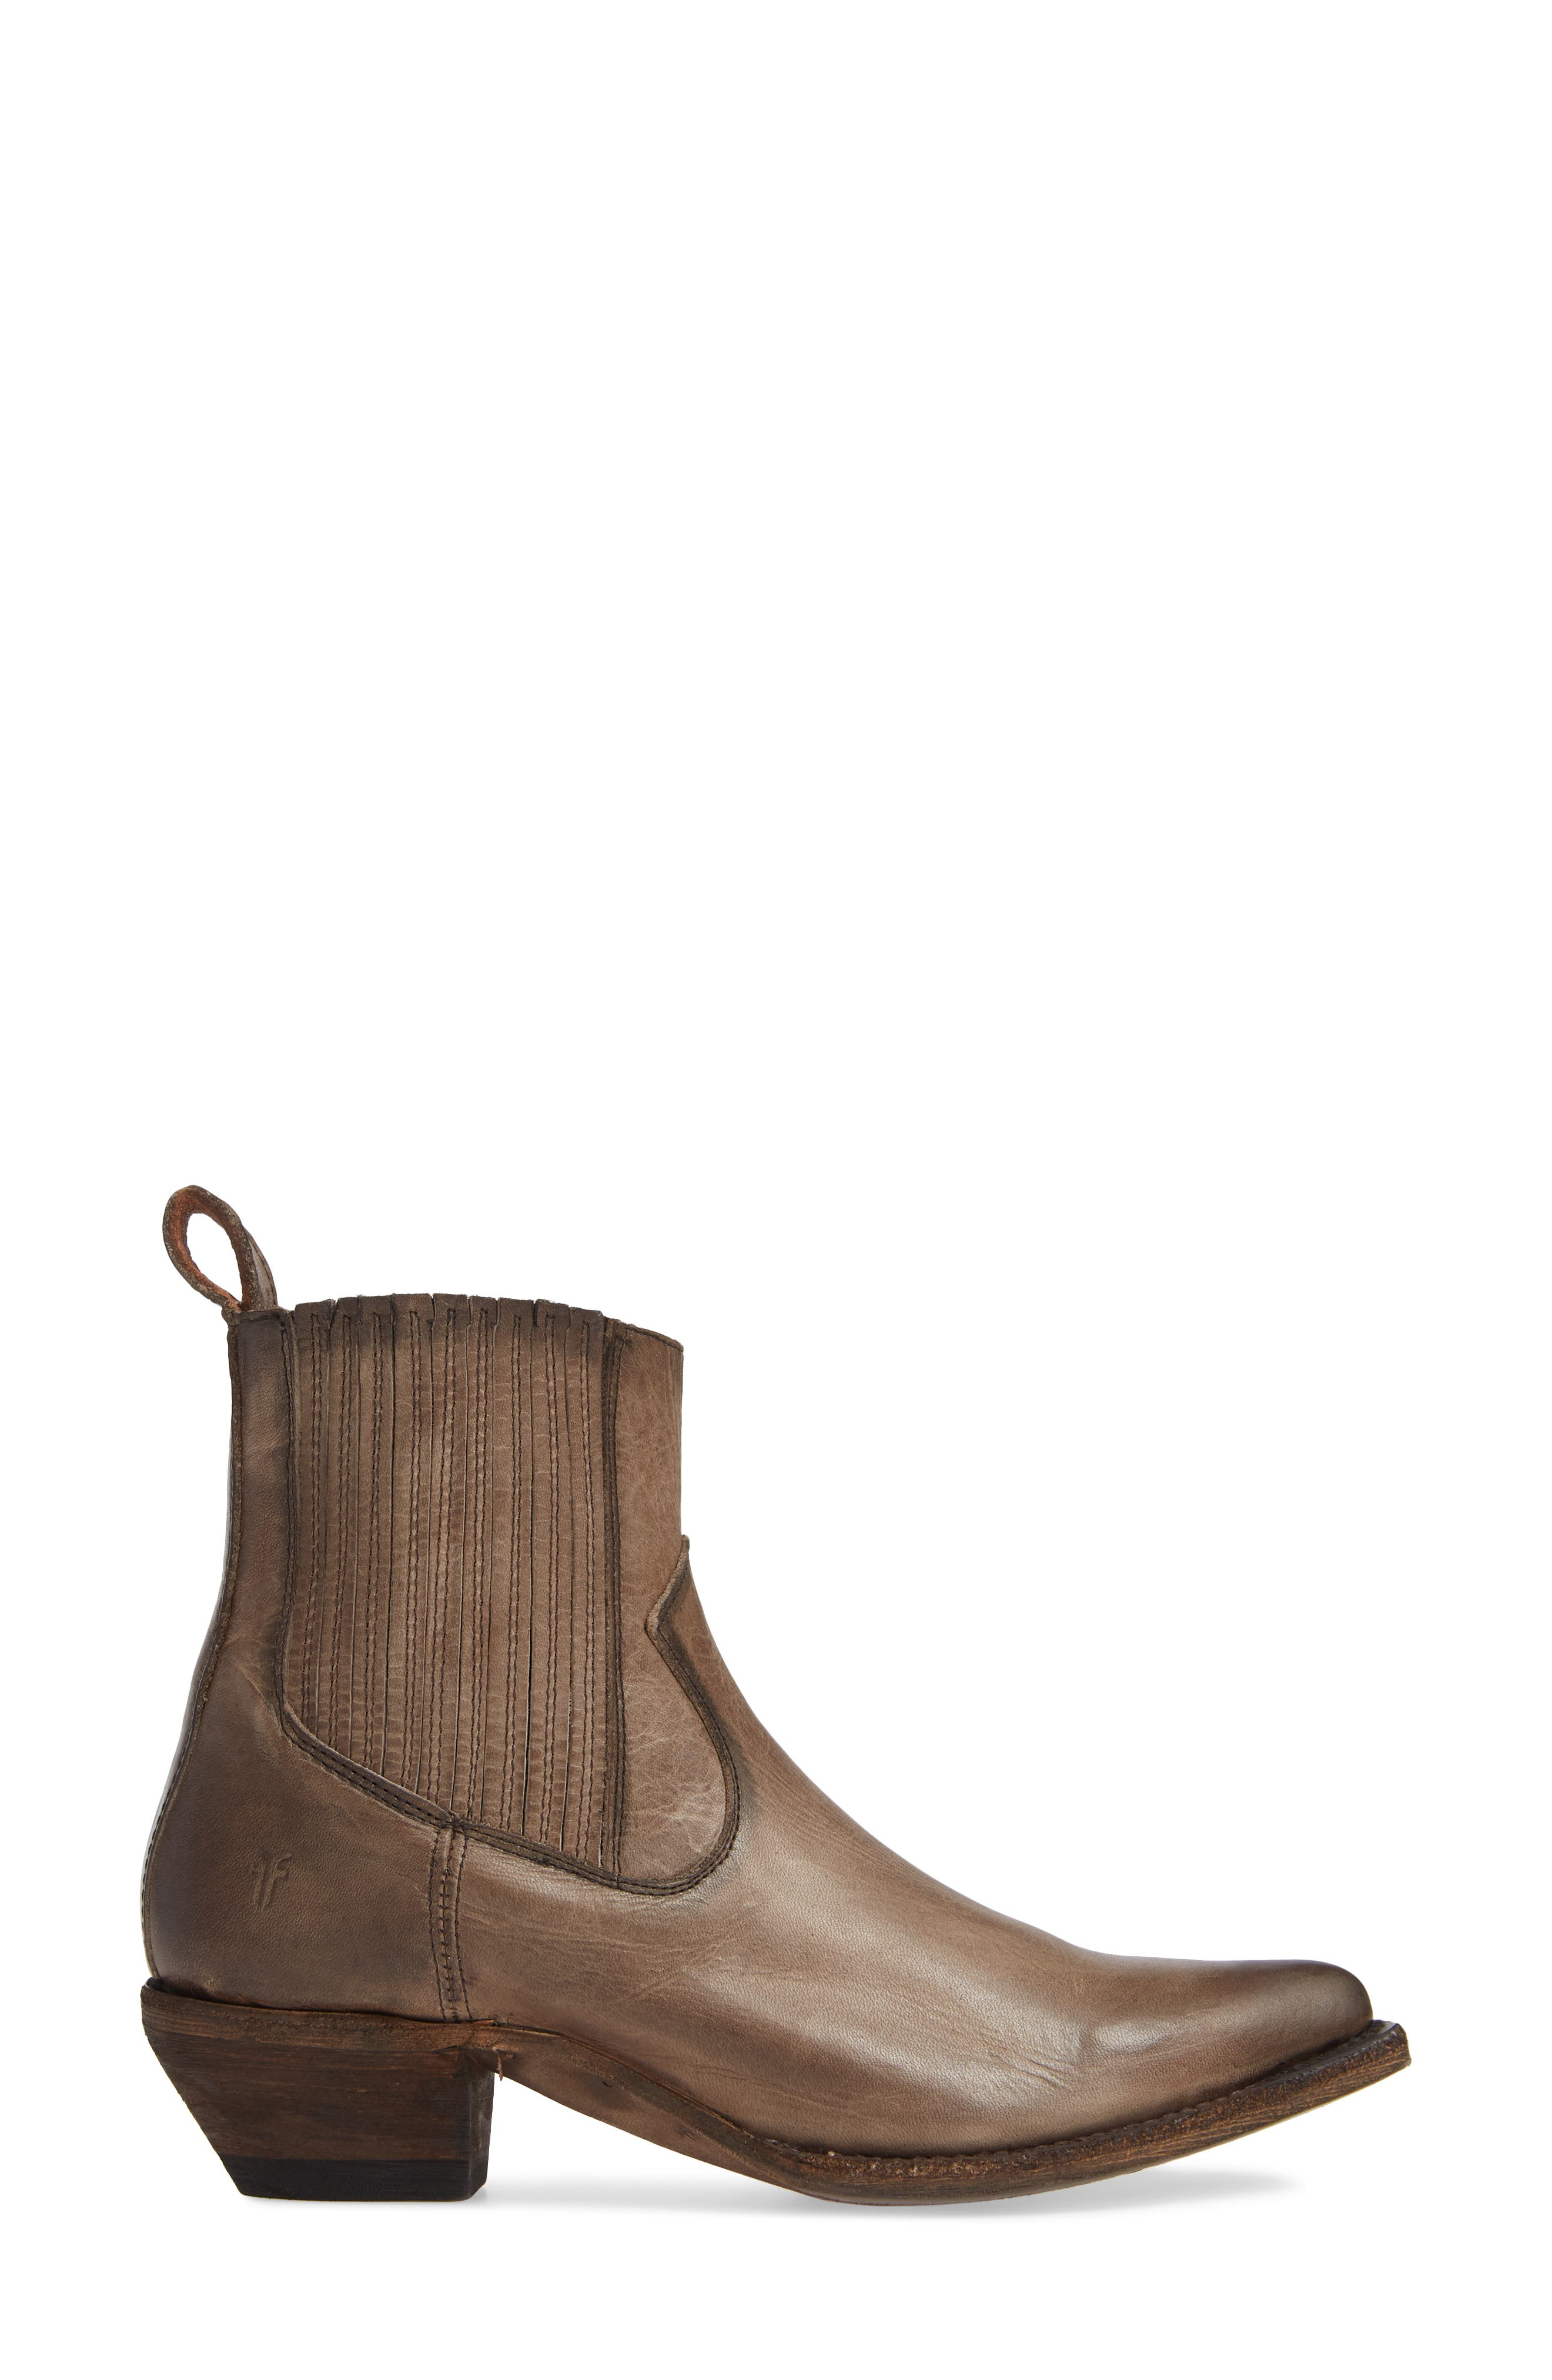 Sacha Western Bootie,                             Alternate thumbnail 3, color,                             STONE LEATHER